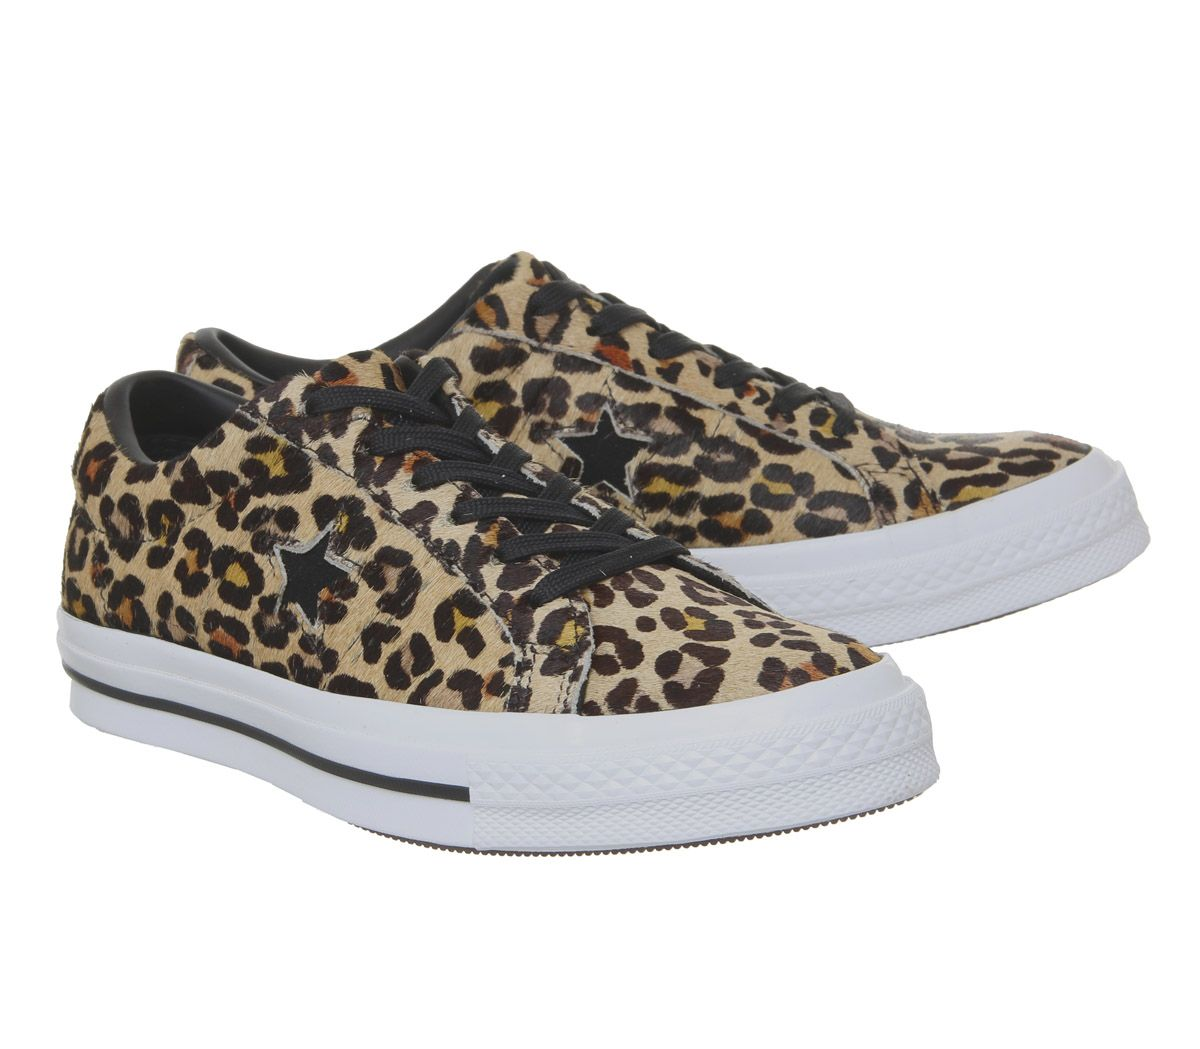 bfa37785fb0625 Sentinel Womens Converse One Star Trainers Leopard Black White Trainers  Shoes